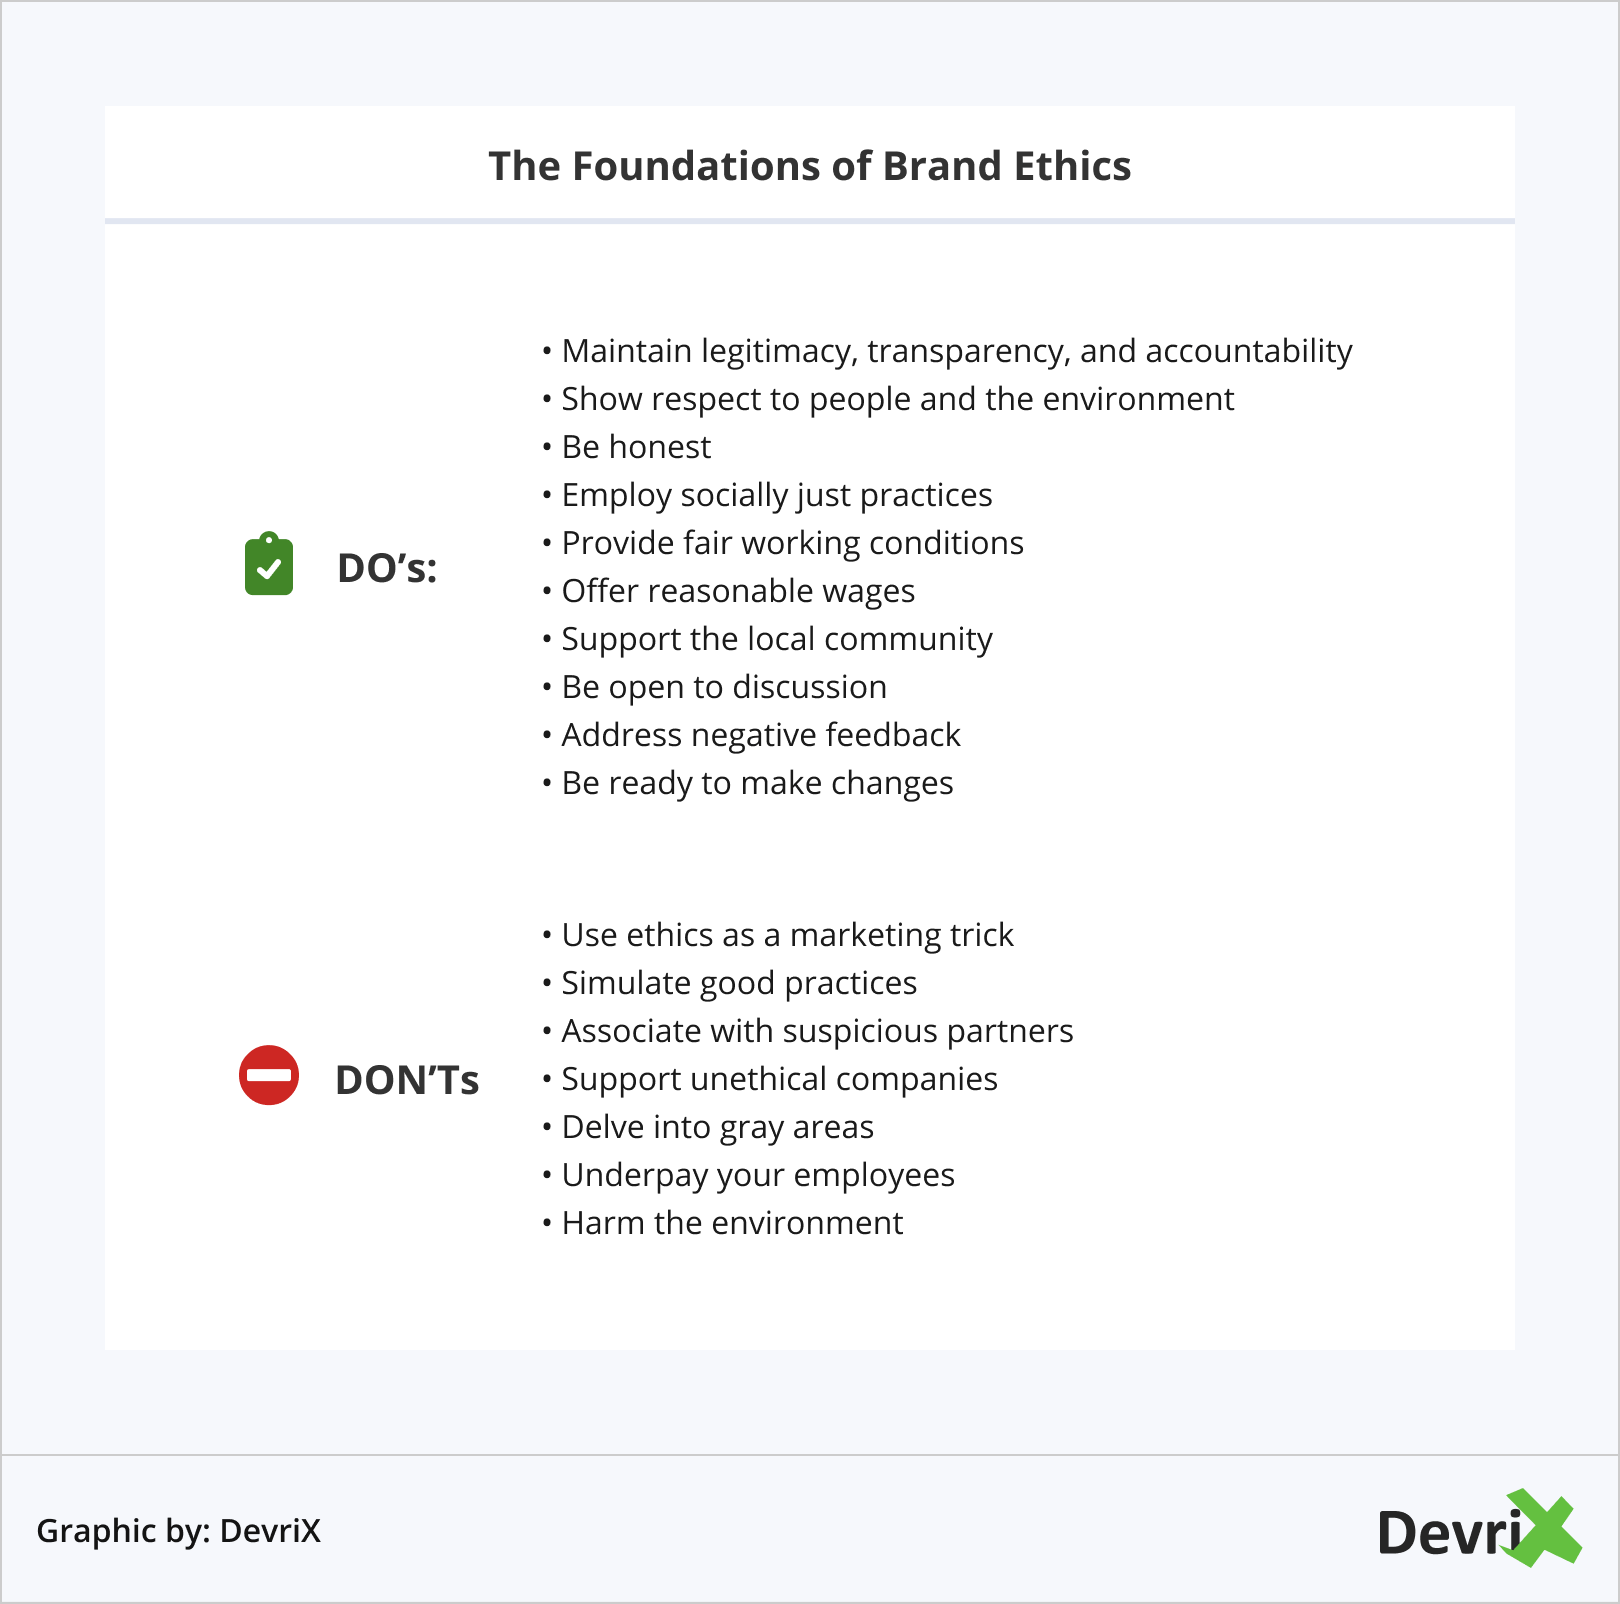 The Foundations of Brand Ethics